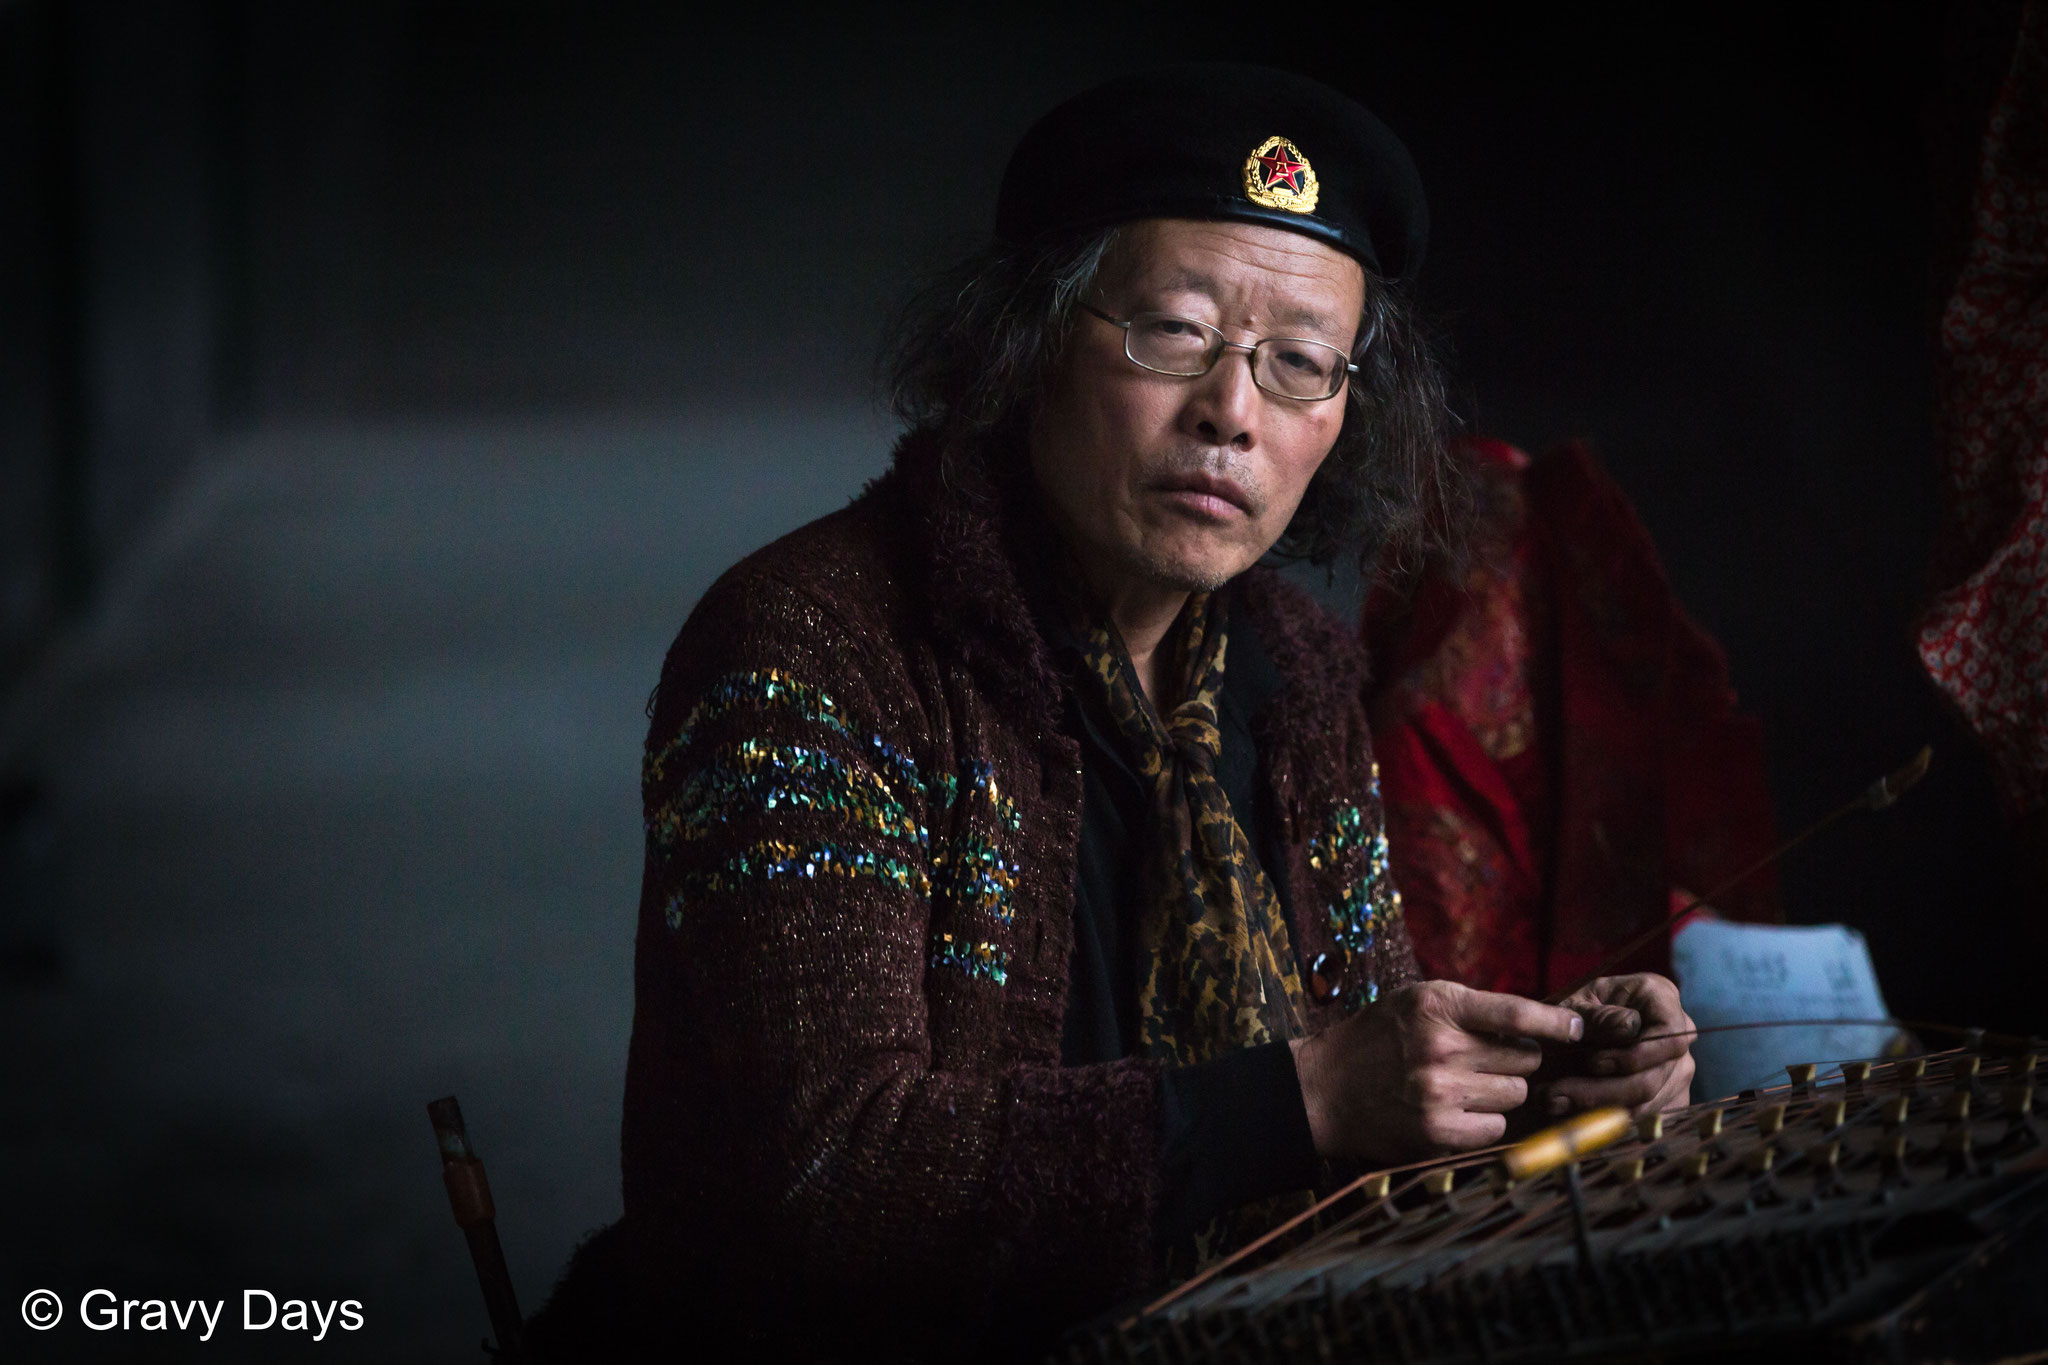 Lonely Musician, Beijing, China 2014